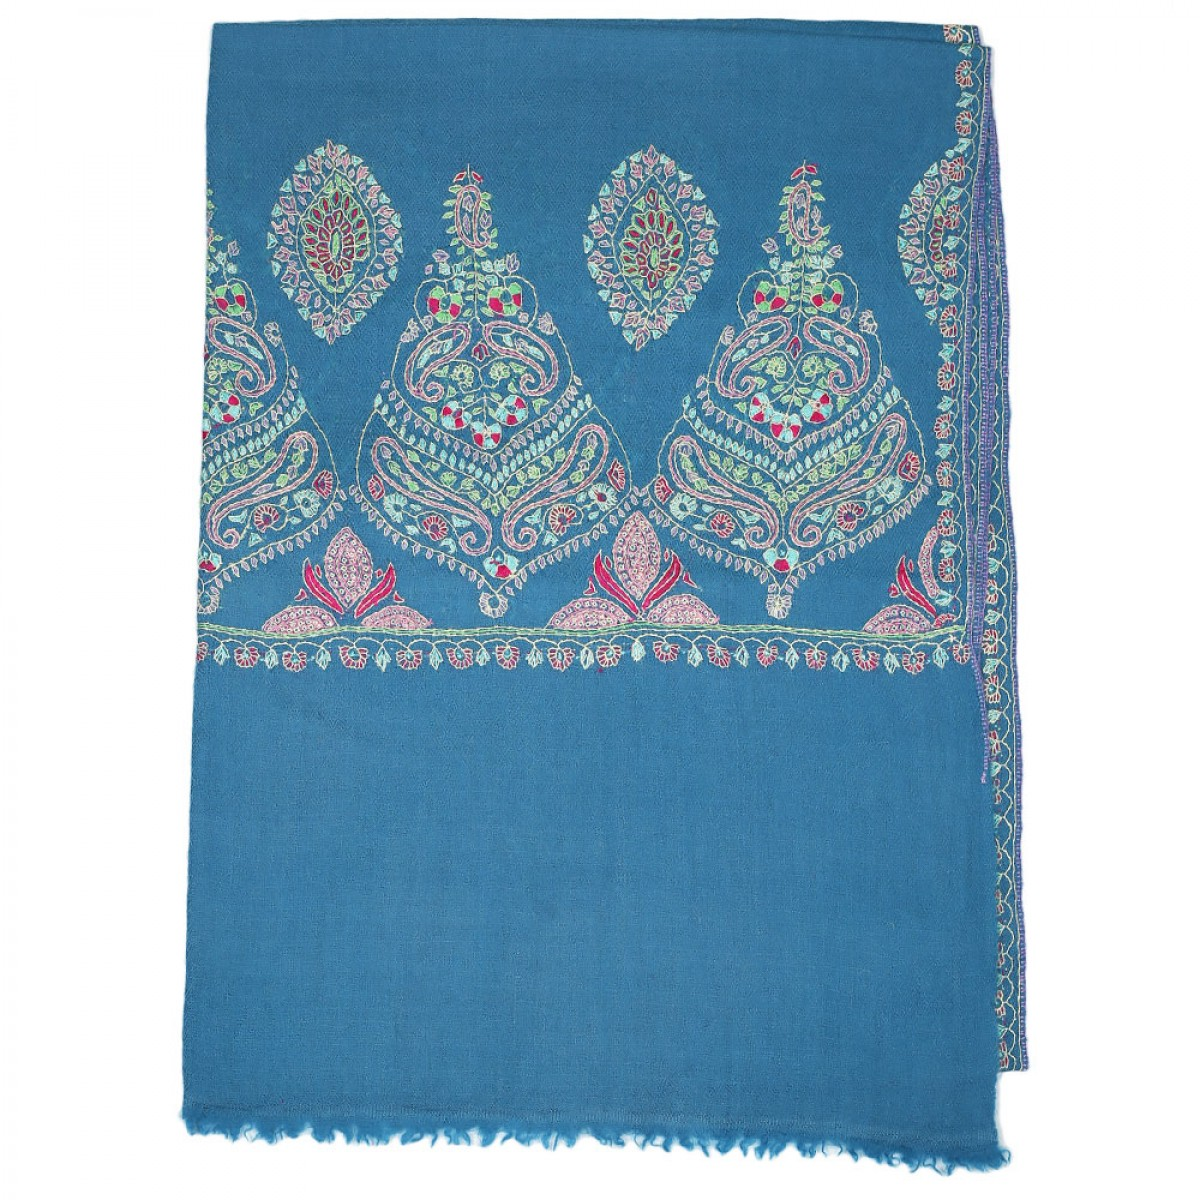 Embroidered Pashmina Stole - Steel Blue